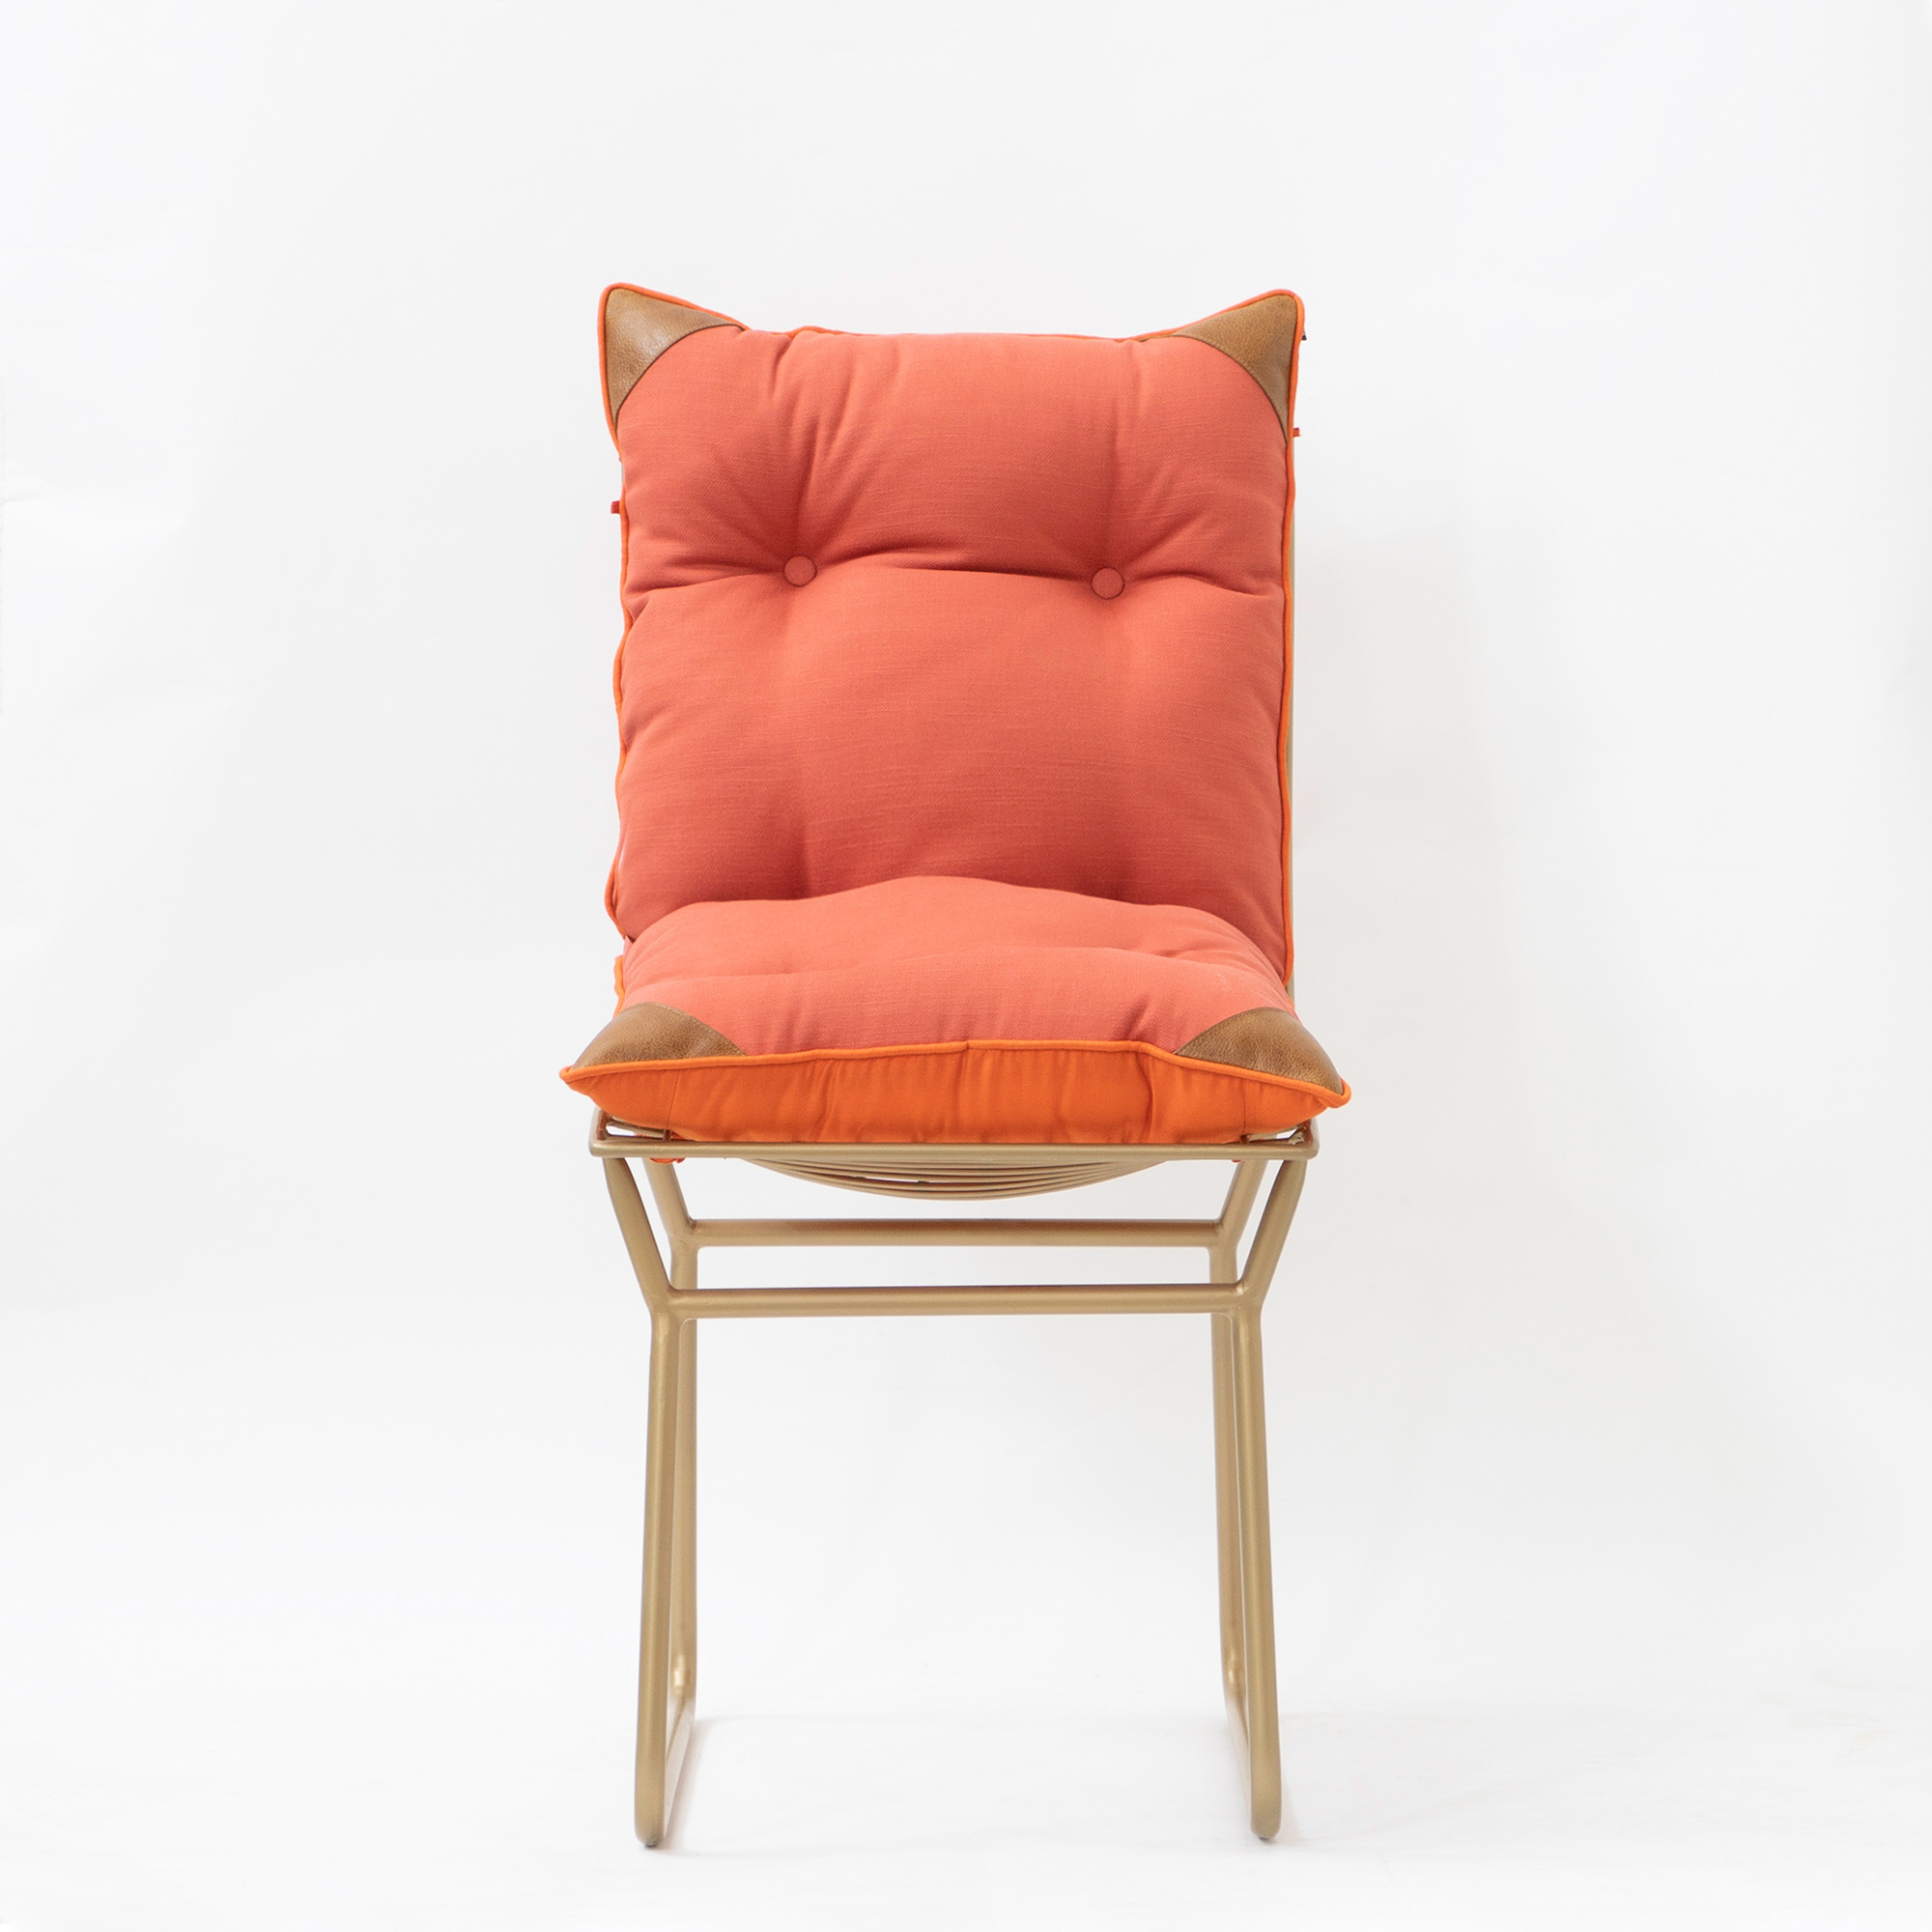 ROSSO METAL CHAIR WITH TIE-UP CUSHION